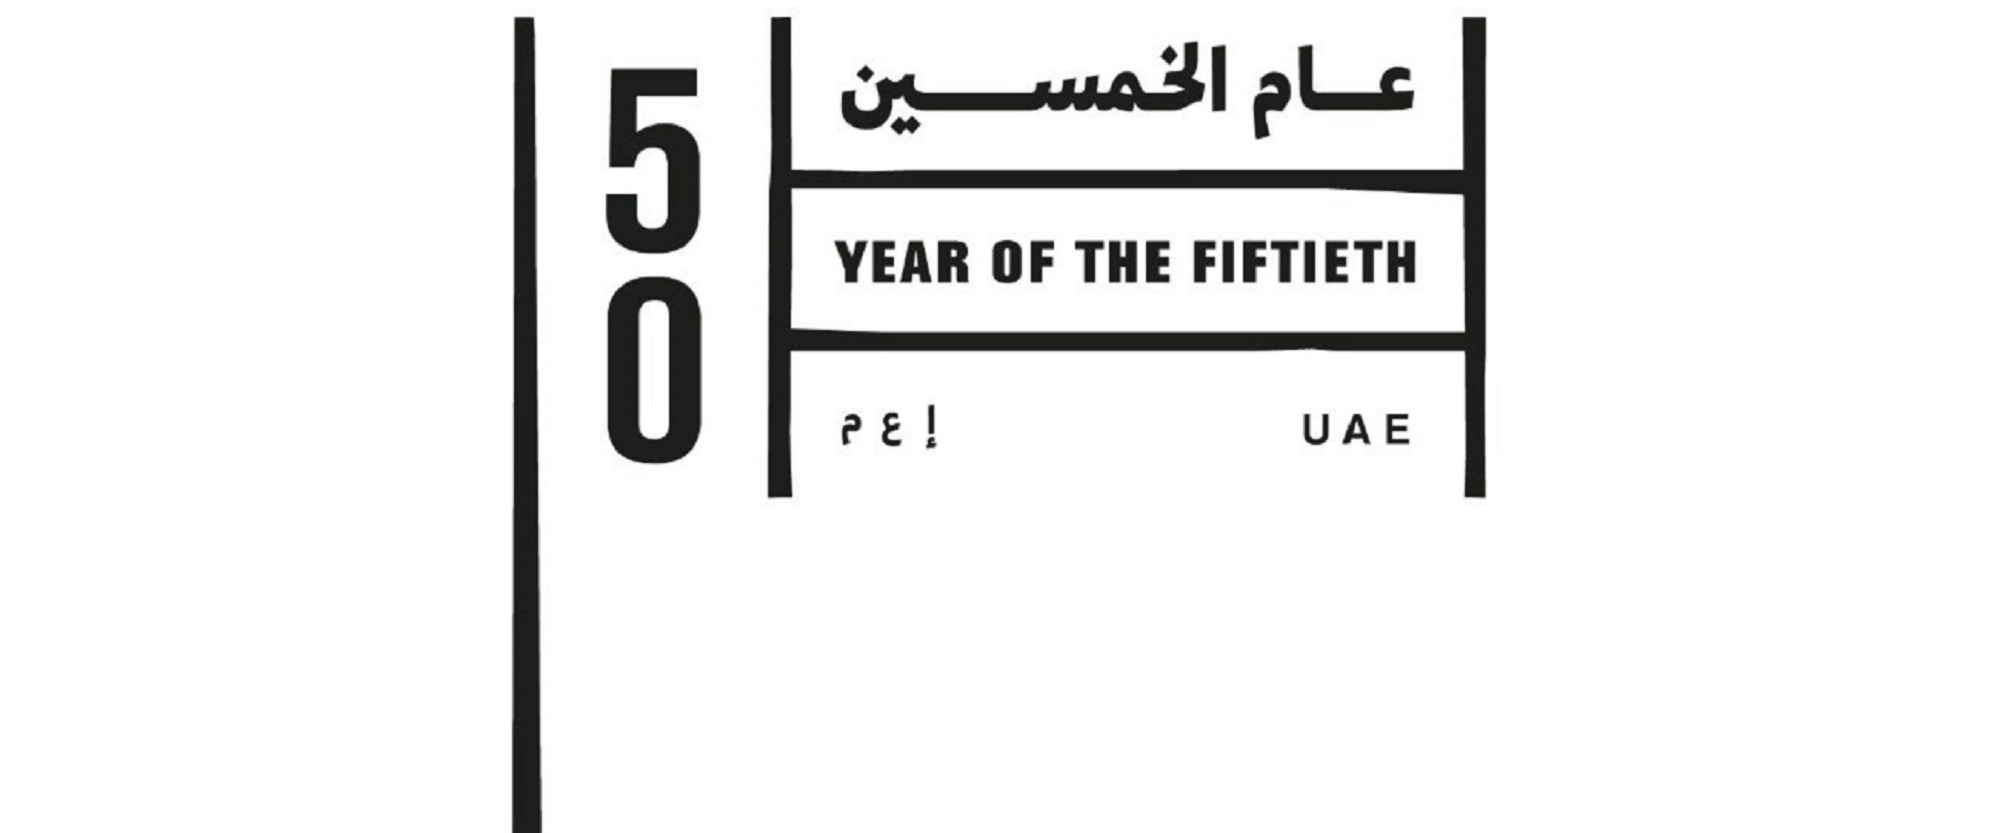 50 years of achievements: UAE Announces 2021 as 'The Year of The 50th'